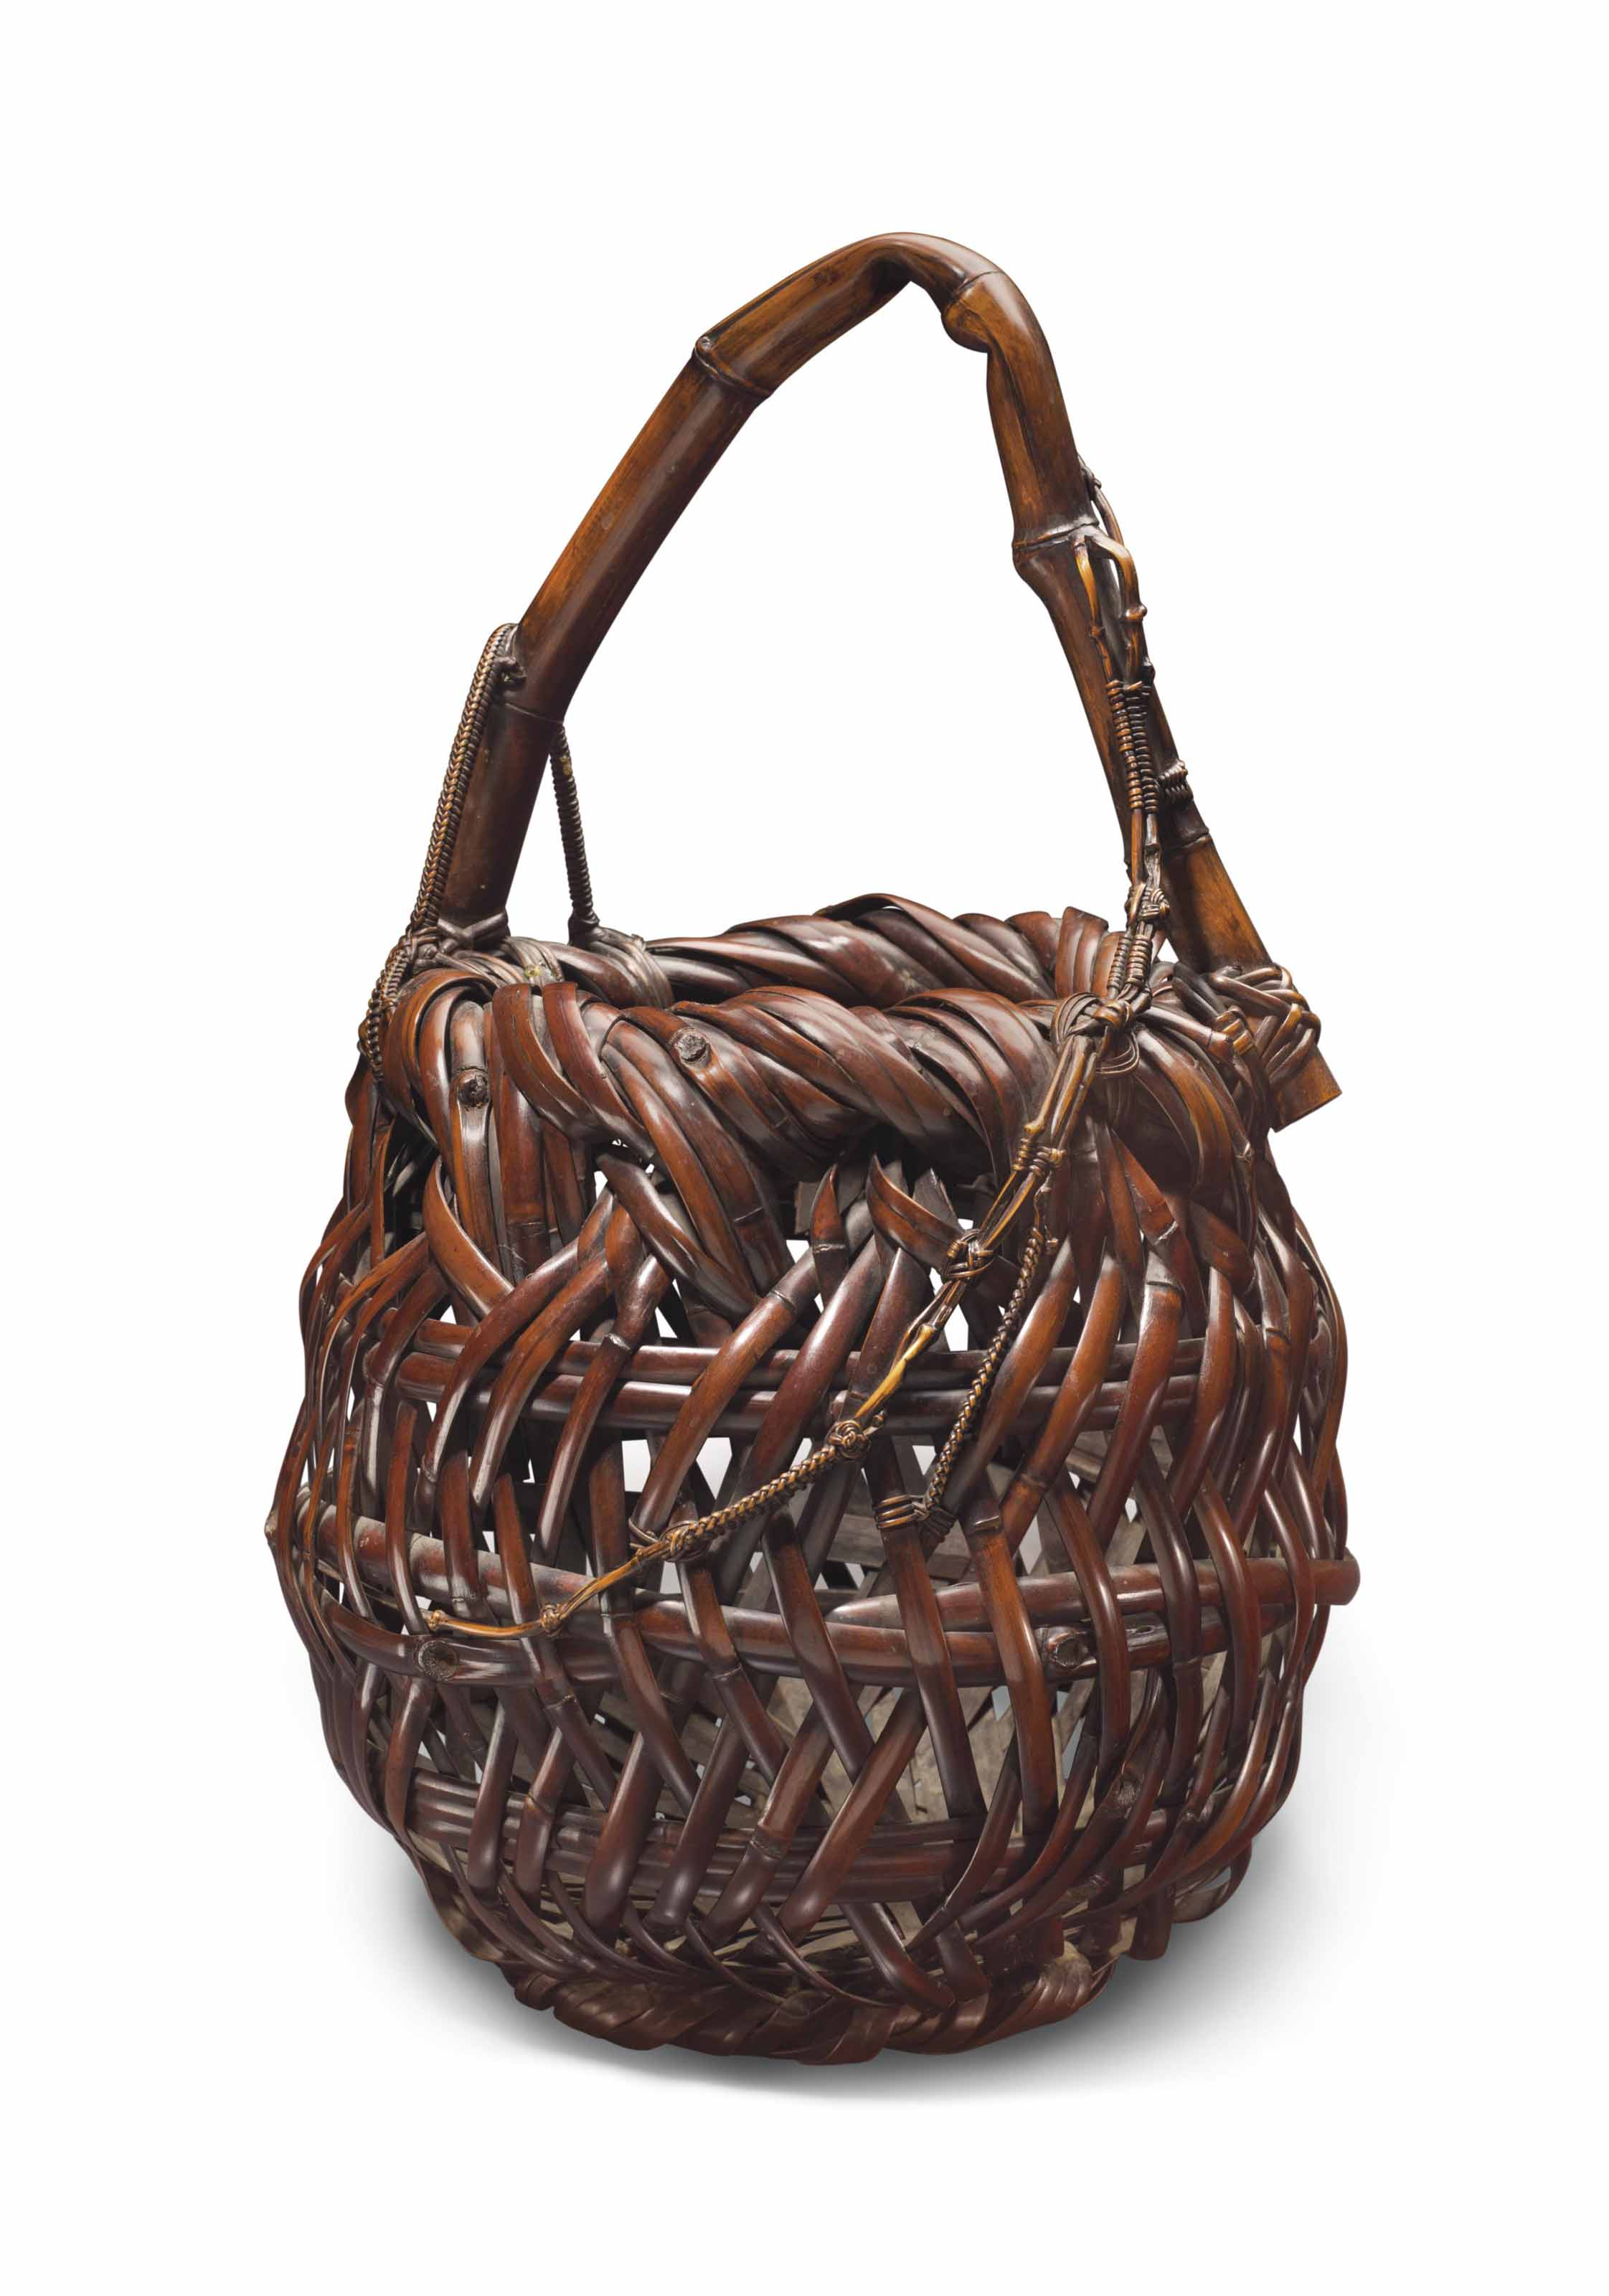 A Japanese Bamboo Flower Basket Taisho Period 20th Century All